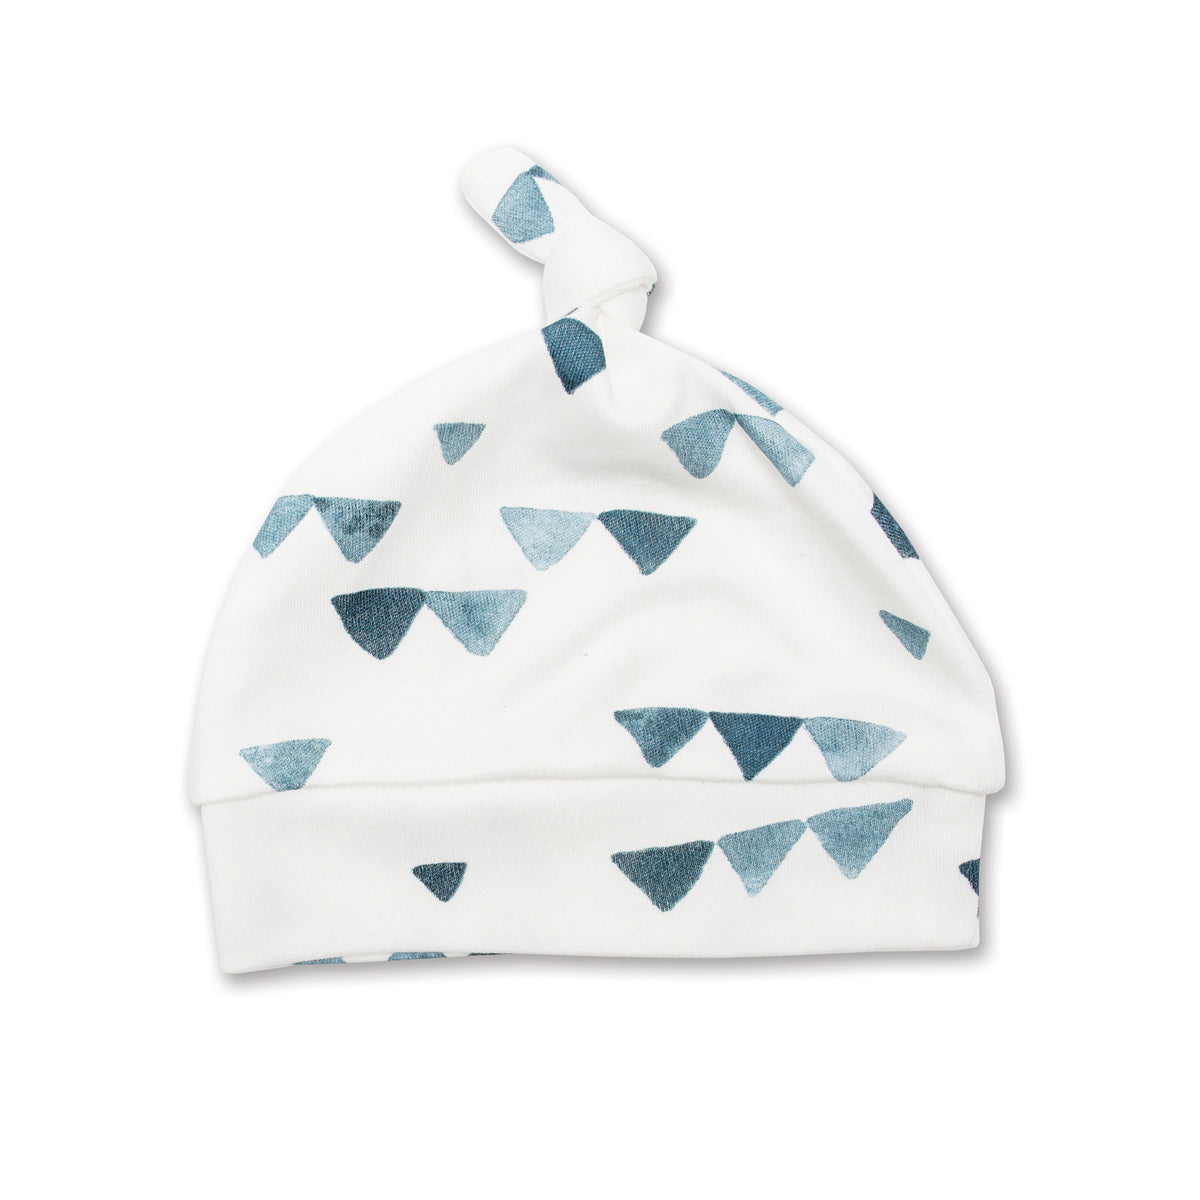 Mary Meyer - Lulujo Hello World Hat & Swaddle Set, Navy Triangles